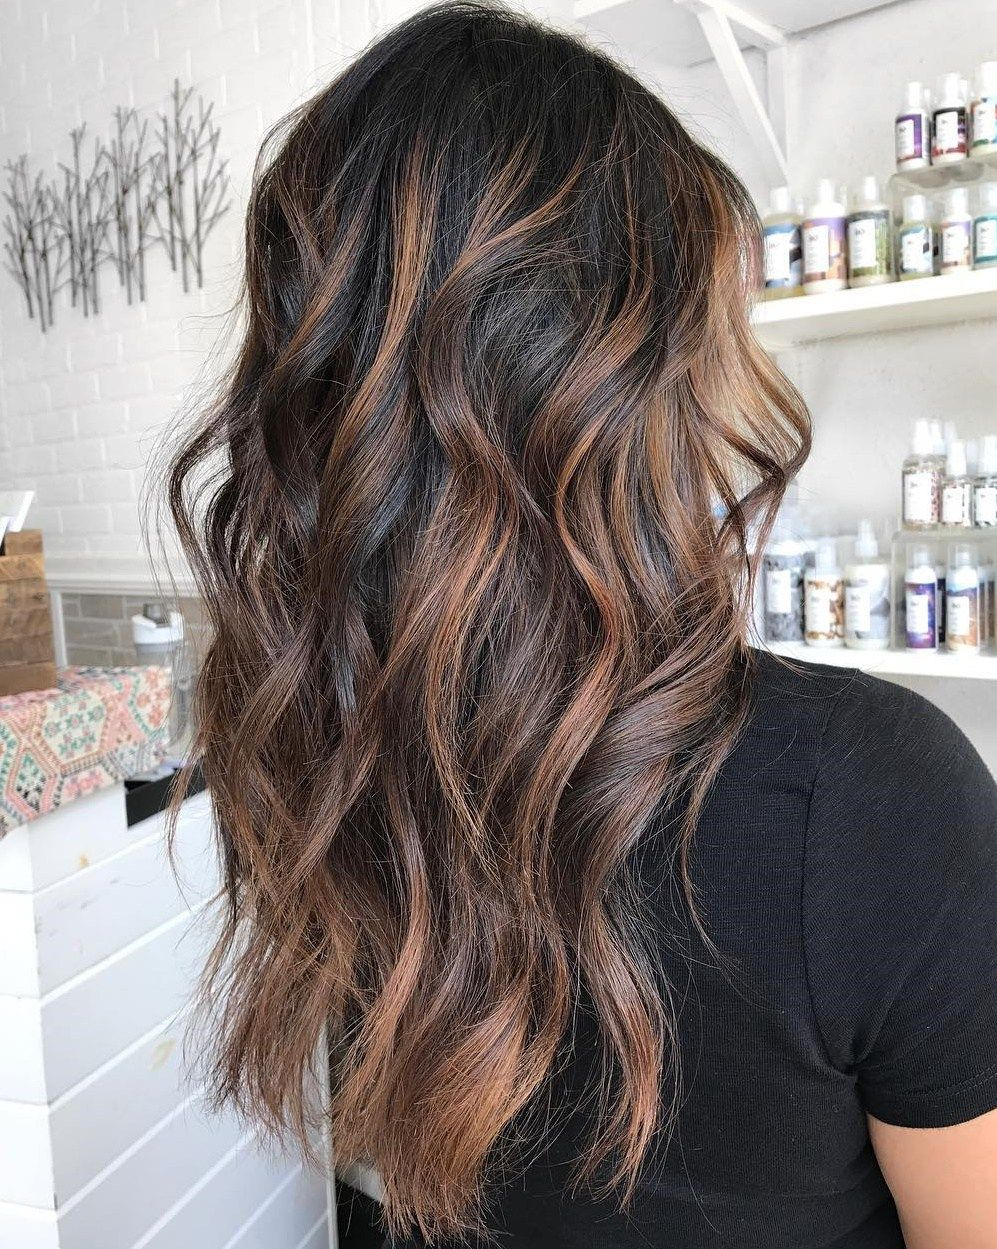 60 Chocolate Brown Hair Color Ideas For Brunettes Brown Hair With Highlights Hair Highlights Dark Hair With Highlights